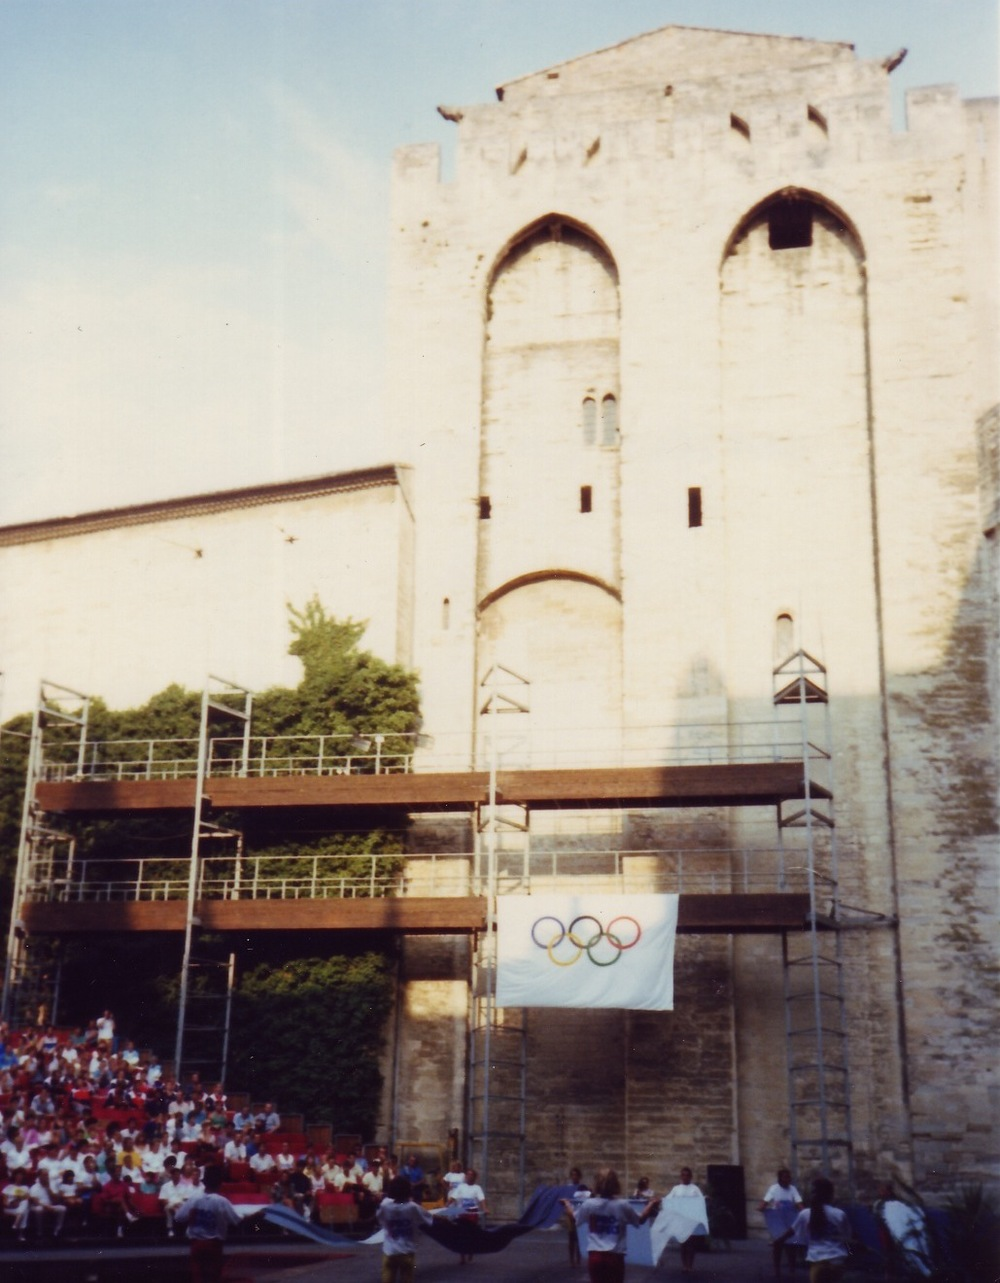 The Olympic flag on the Popes' Palace, 1990.